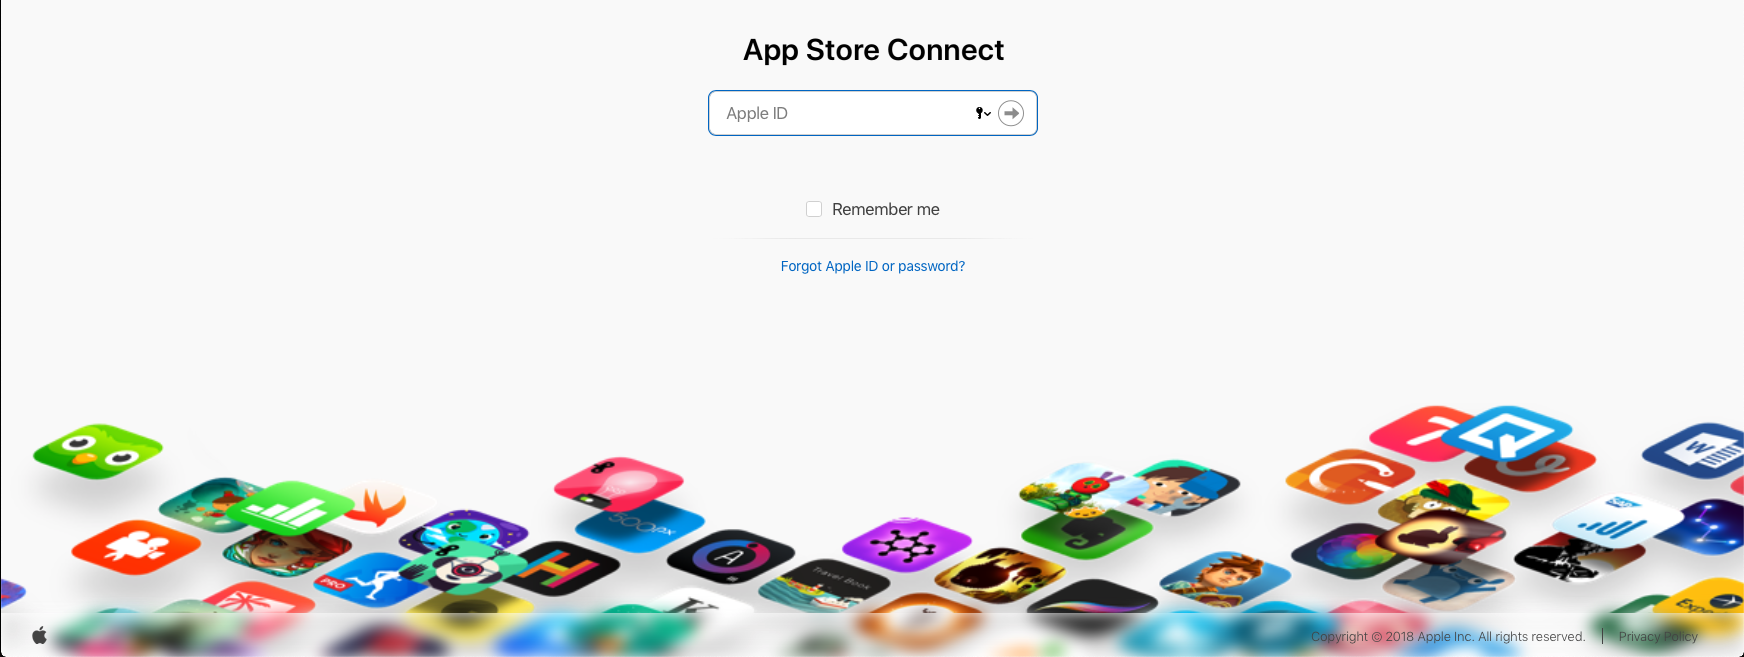 App Store Connect API is Here: How To Prepare For It